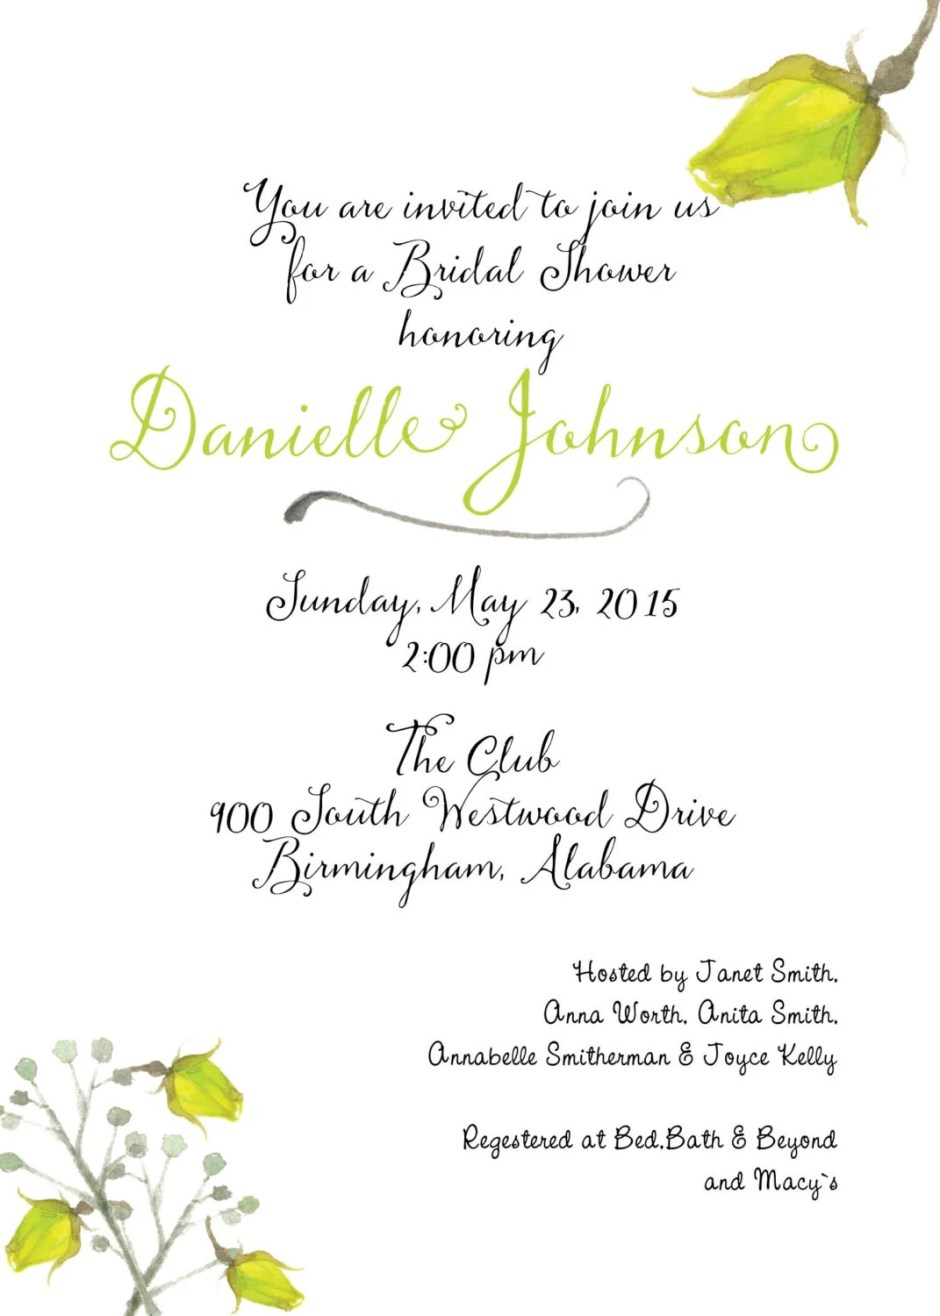 Save the date invitations...